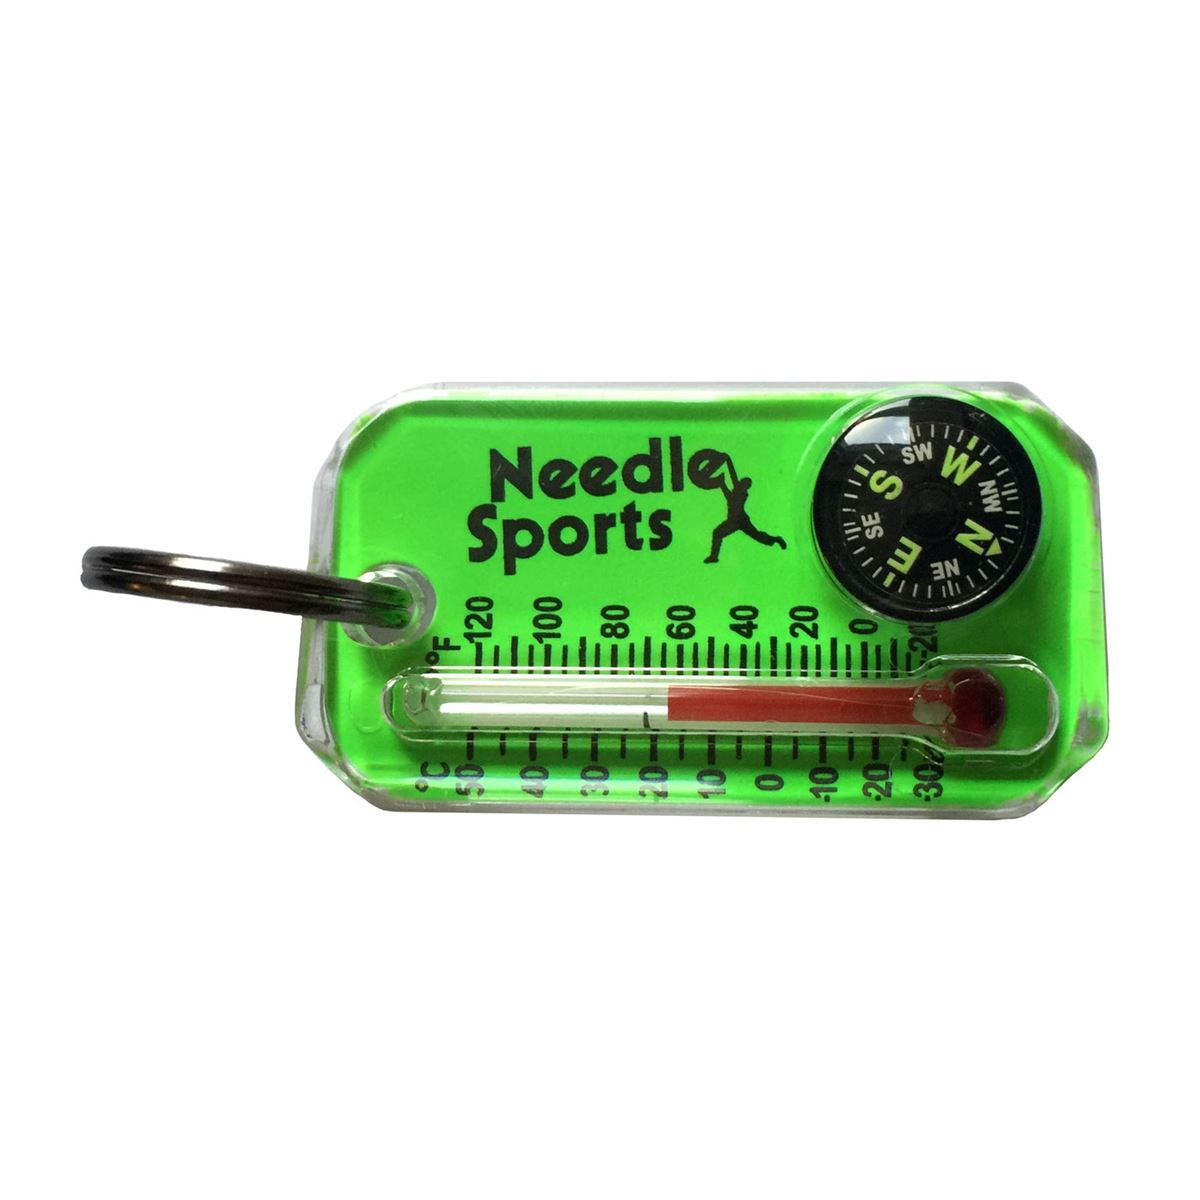 Needle Sports Zip O Gauge Thermometer Compass Keyring